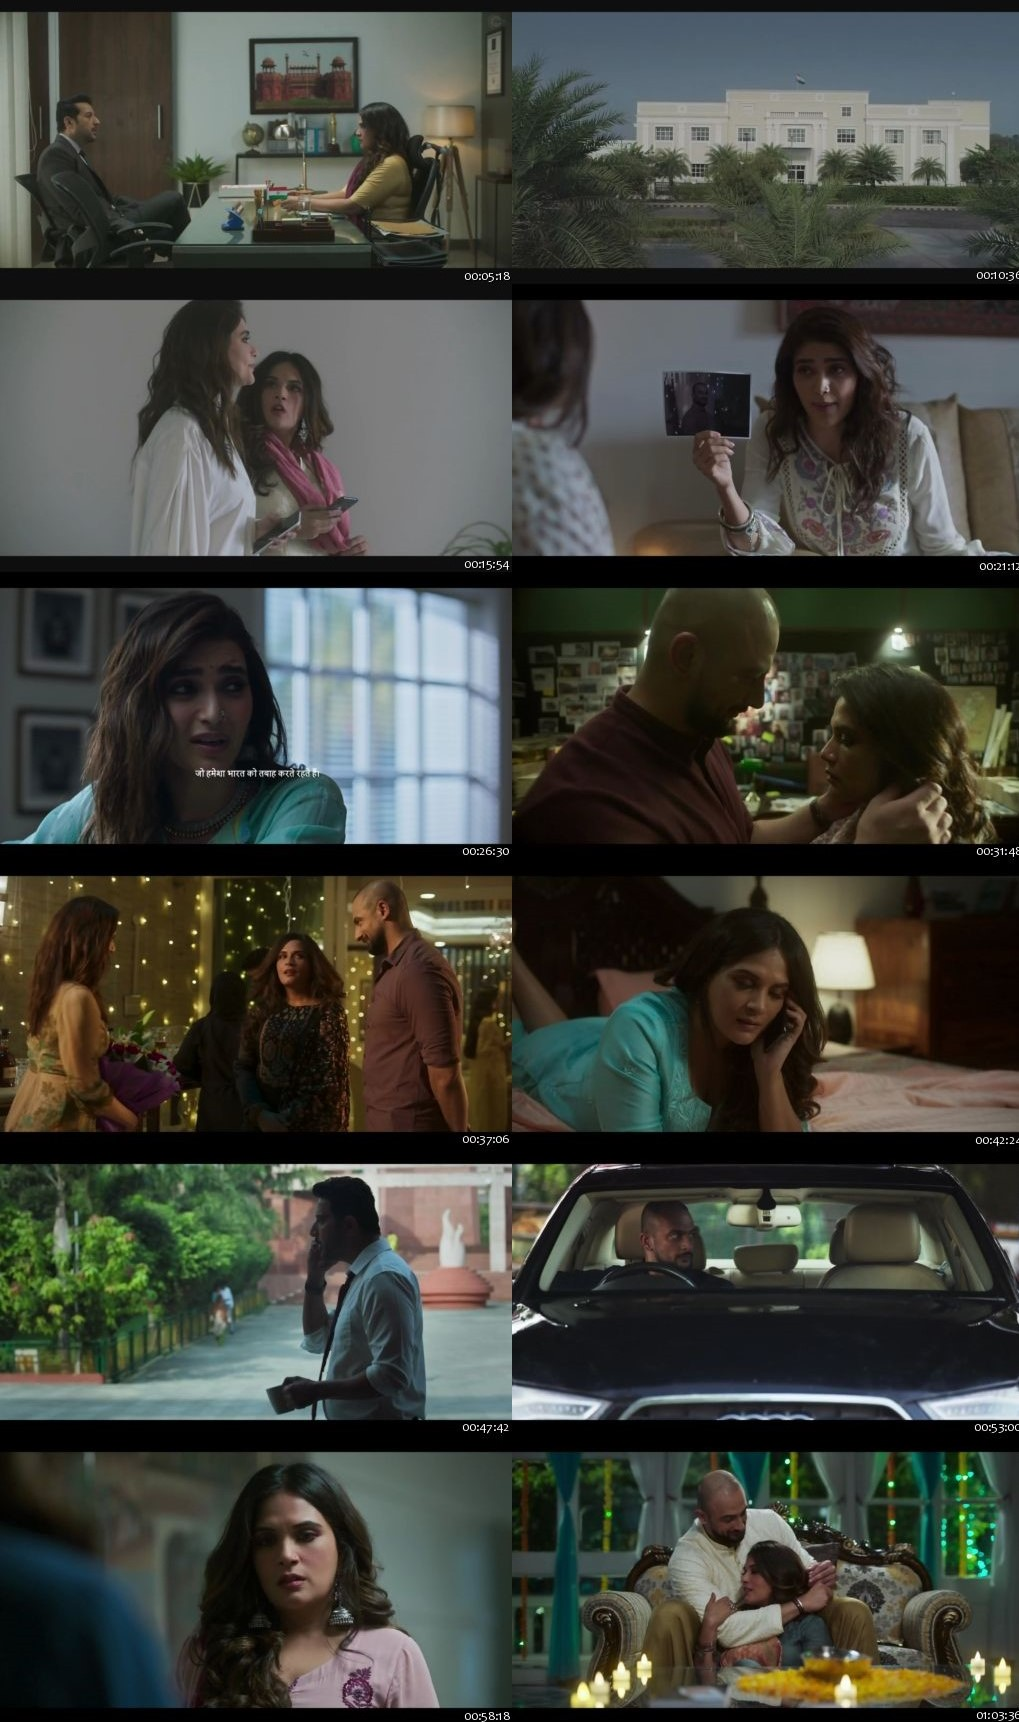 Lahore Confidential 2021 Full Hindi Movie Online Watch HDRip 720p